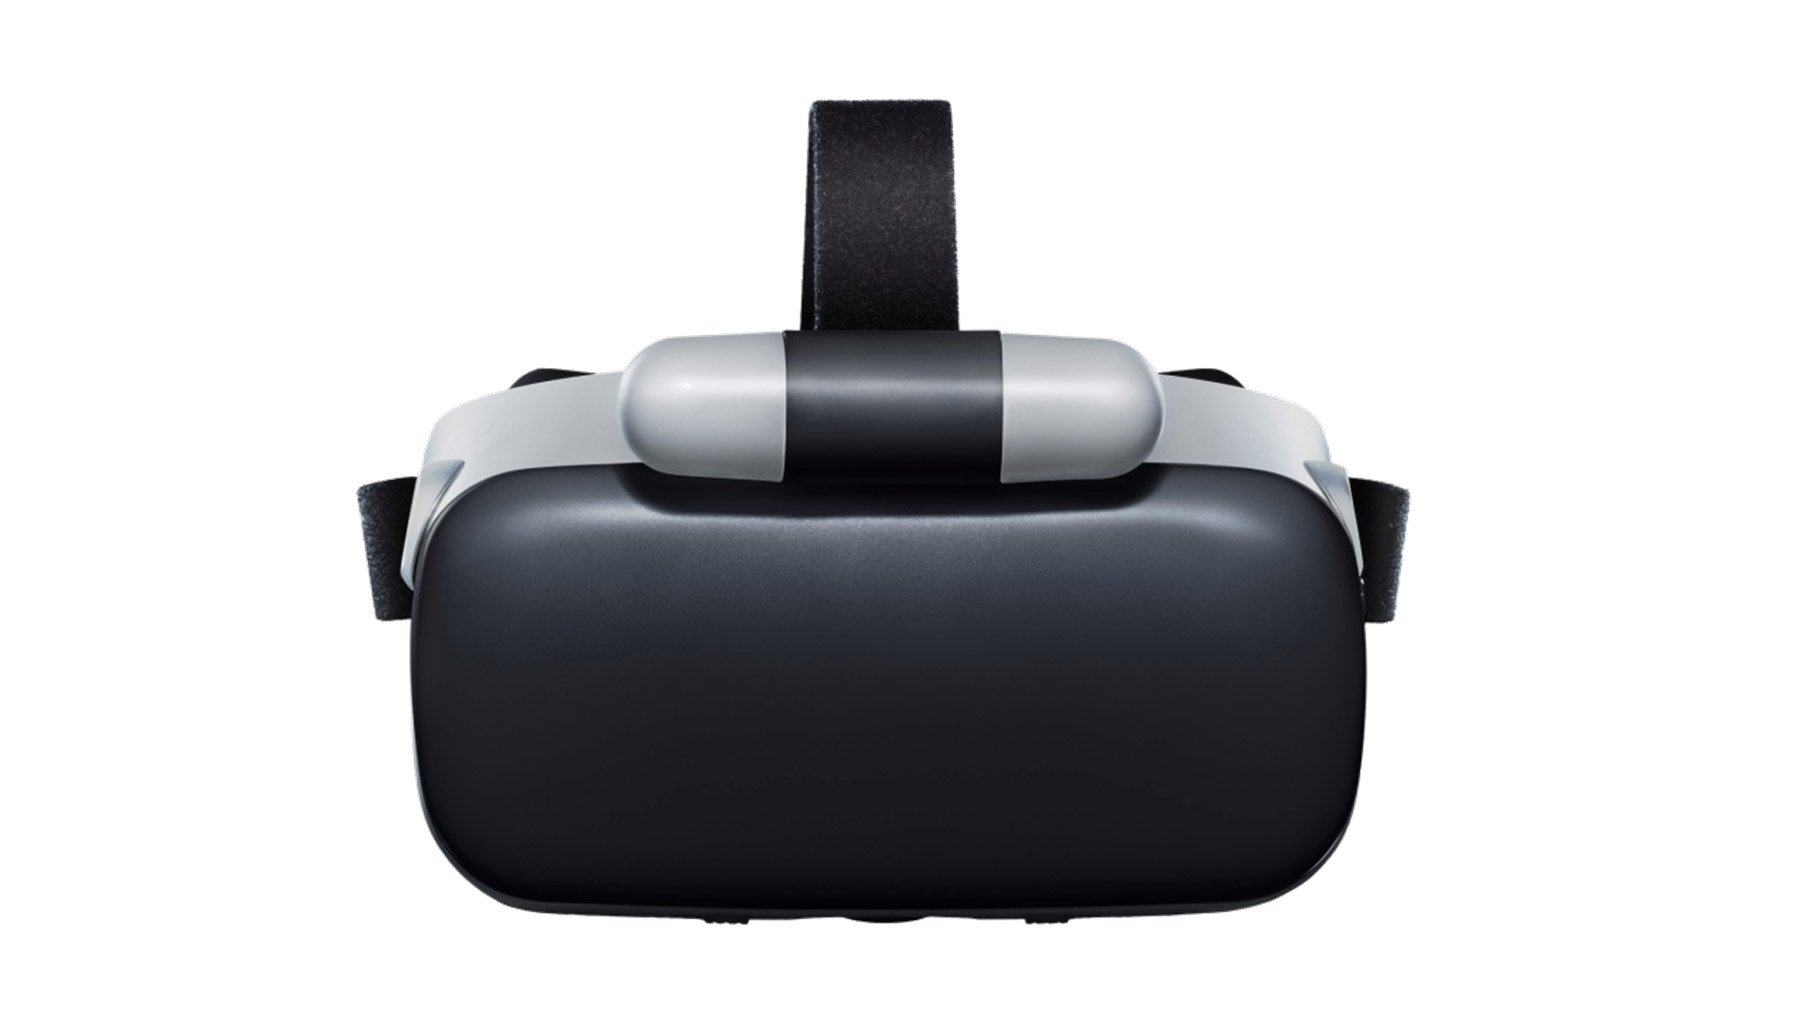 HTC's New'Link' Mobile VR Headset Comes with 6 DoF htc blog vr blog virtual reality